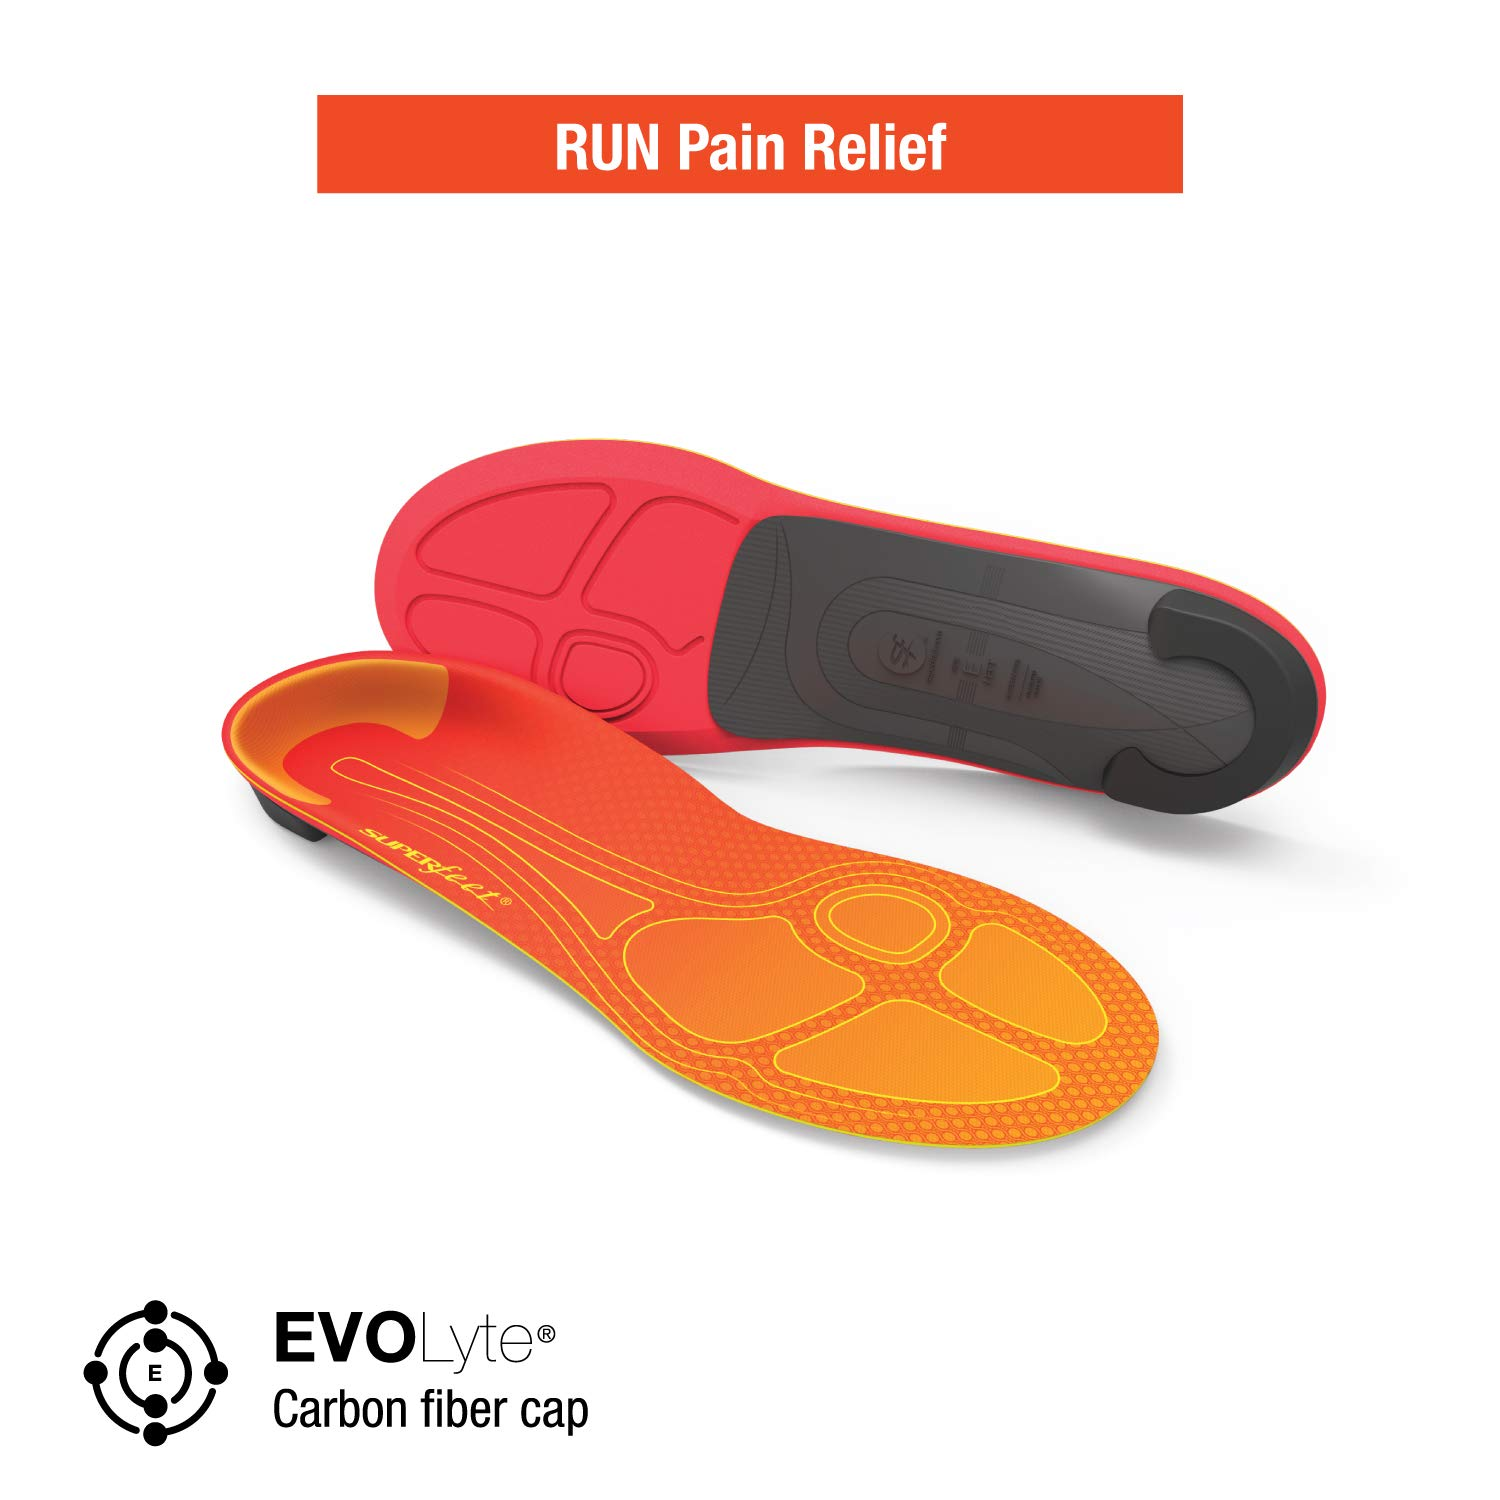 Superfeet Run Pain Relief Insoles, Customizable Heel Stability Professional-Grade Orthotic Insert for Maximum Support, Tangerine, B: 4.5-6 US Womens / 2.5-4 US Juniors by Superfeet (Image #2)